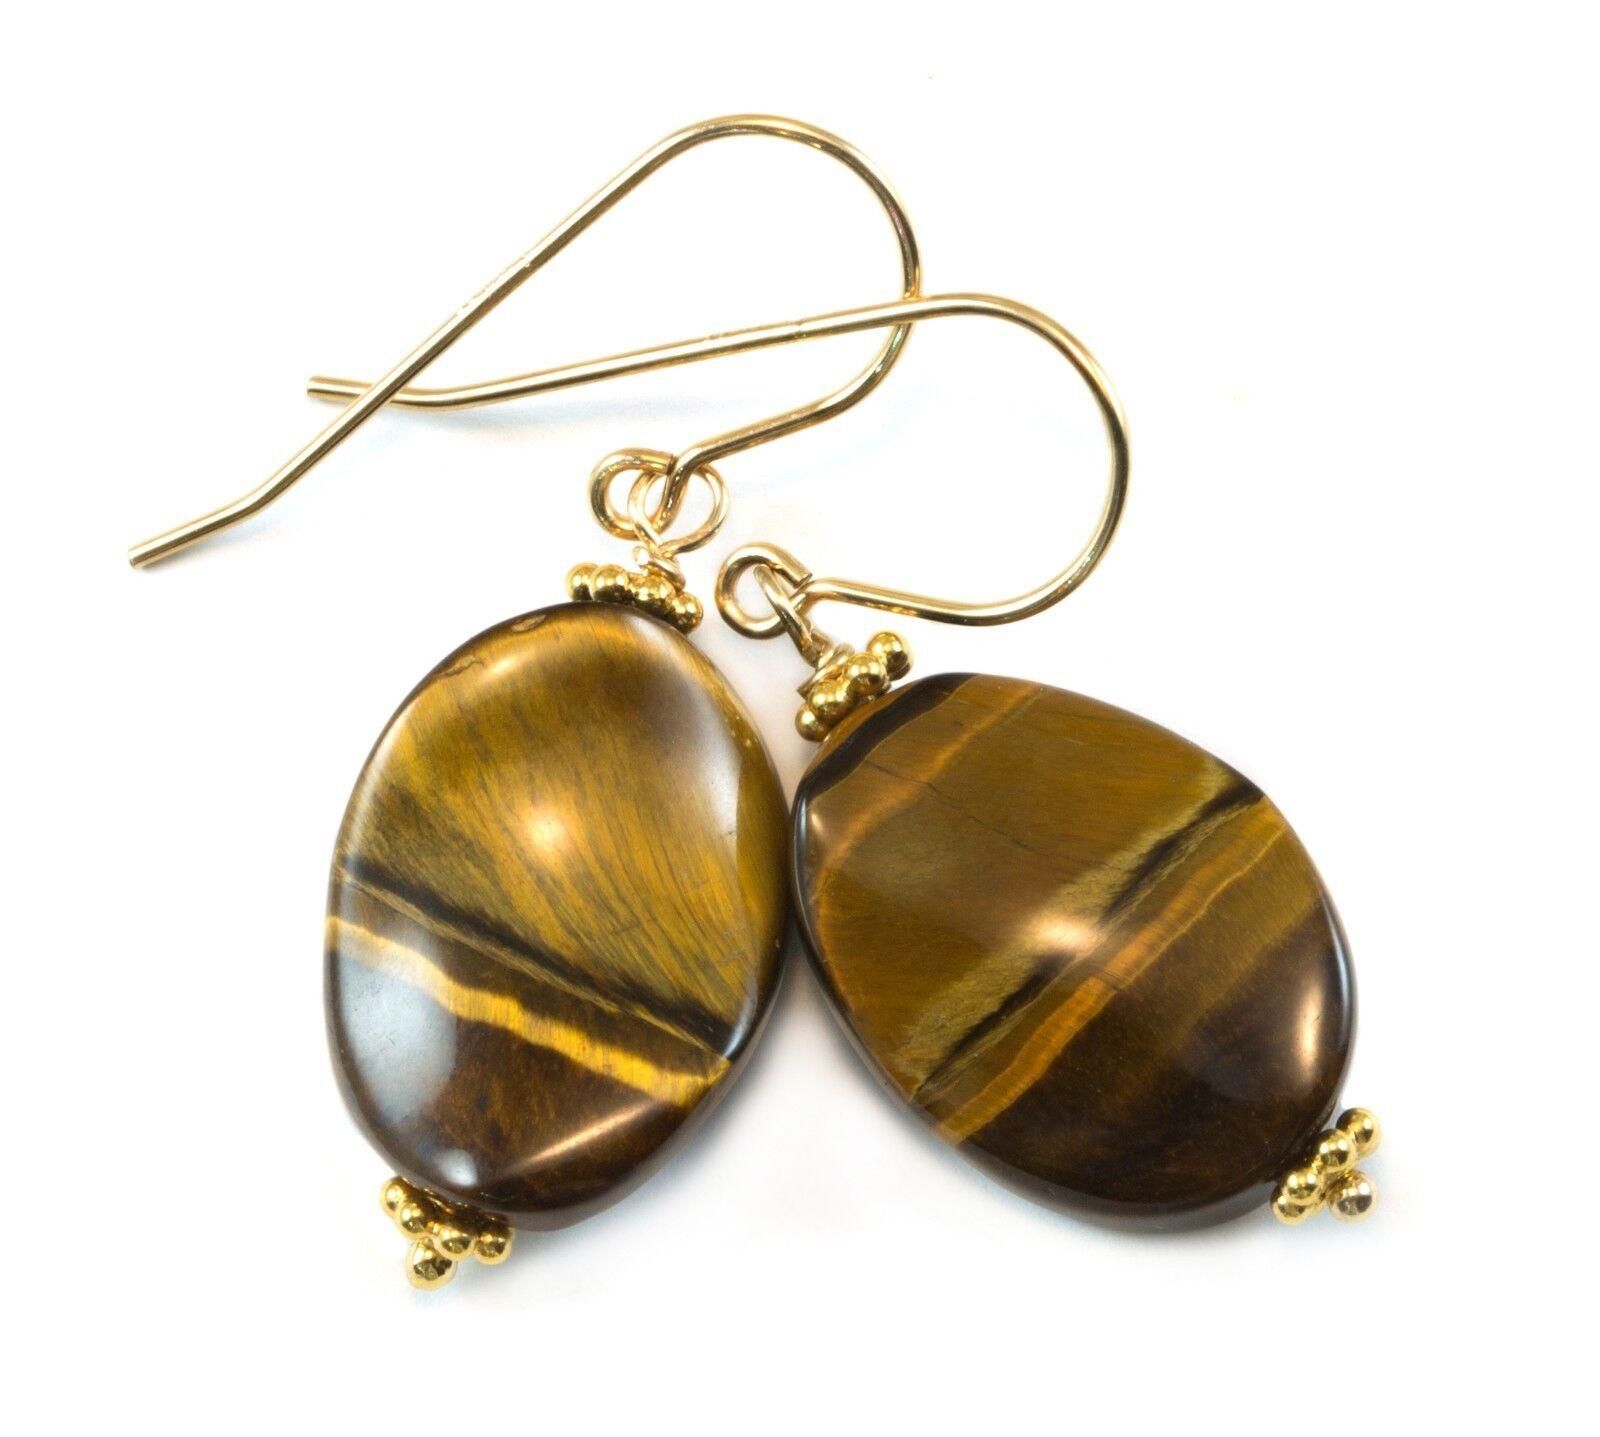 Tiger's Eye Earrings 14k gold Sterling Oval Curved Dangles Drops golden Simple